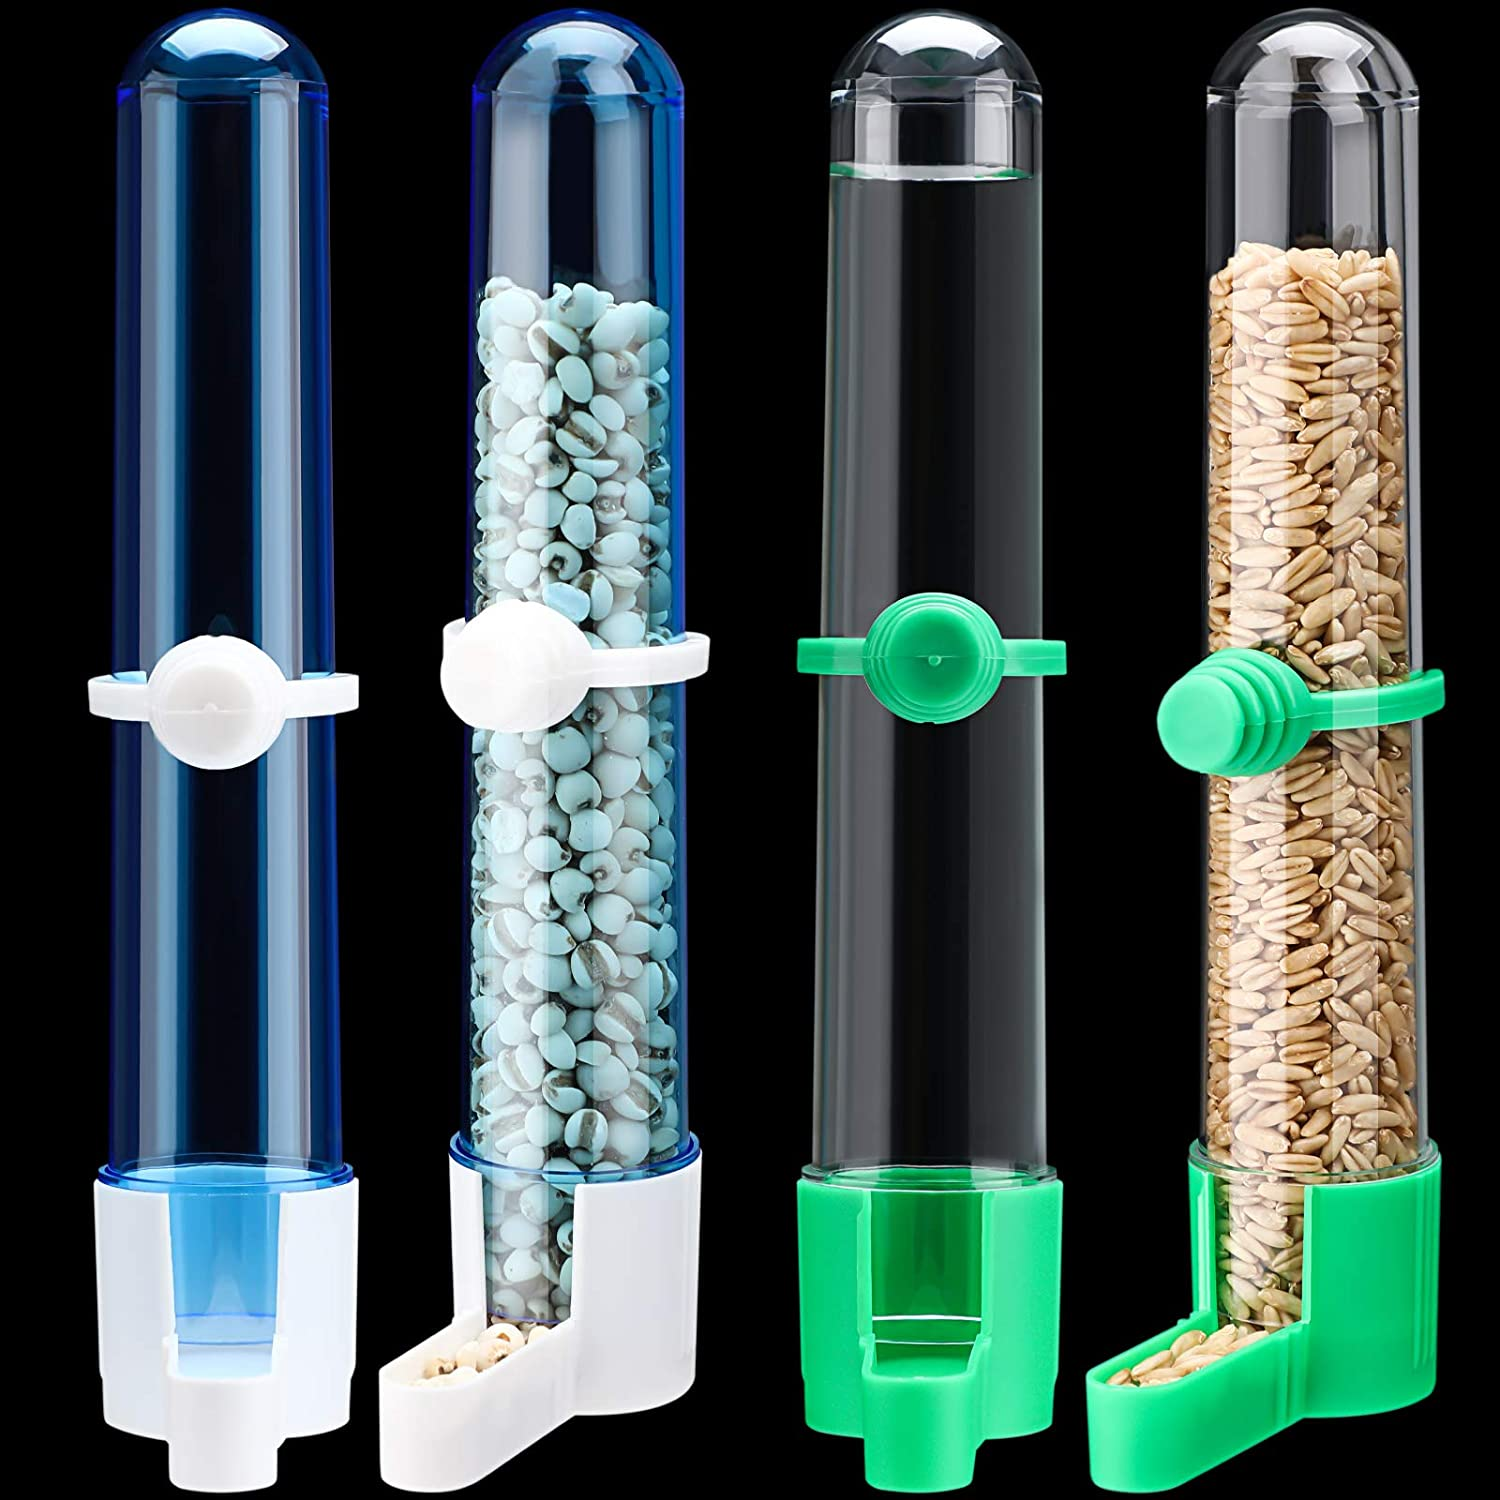 4 Pieces Automatic Bird Water Dispenser for Cages Bird Feeder and Waterer Bird Accessory Drinker Bottle for Hamster Parrot